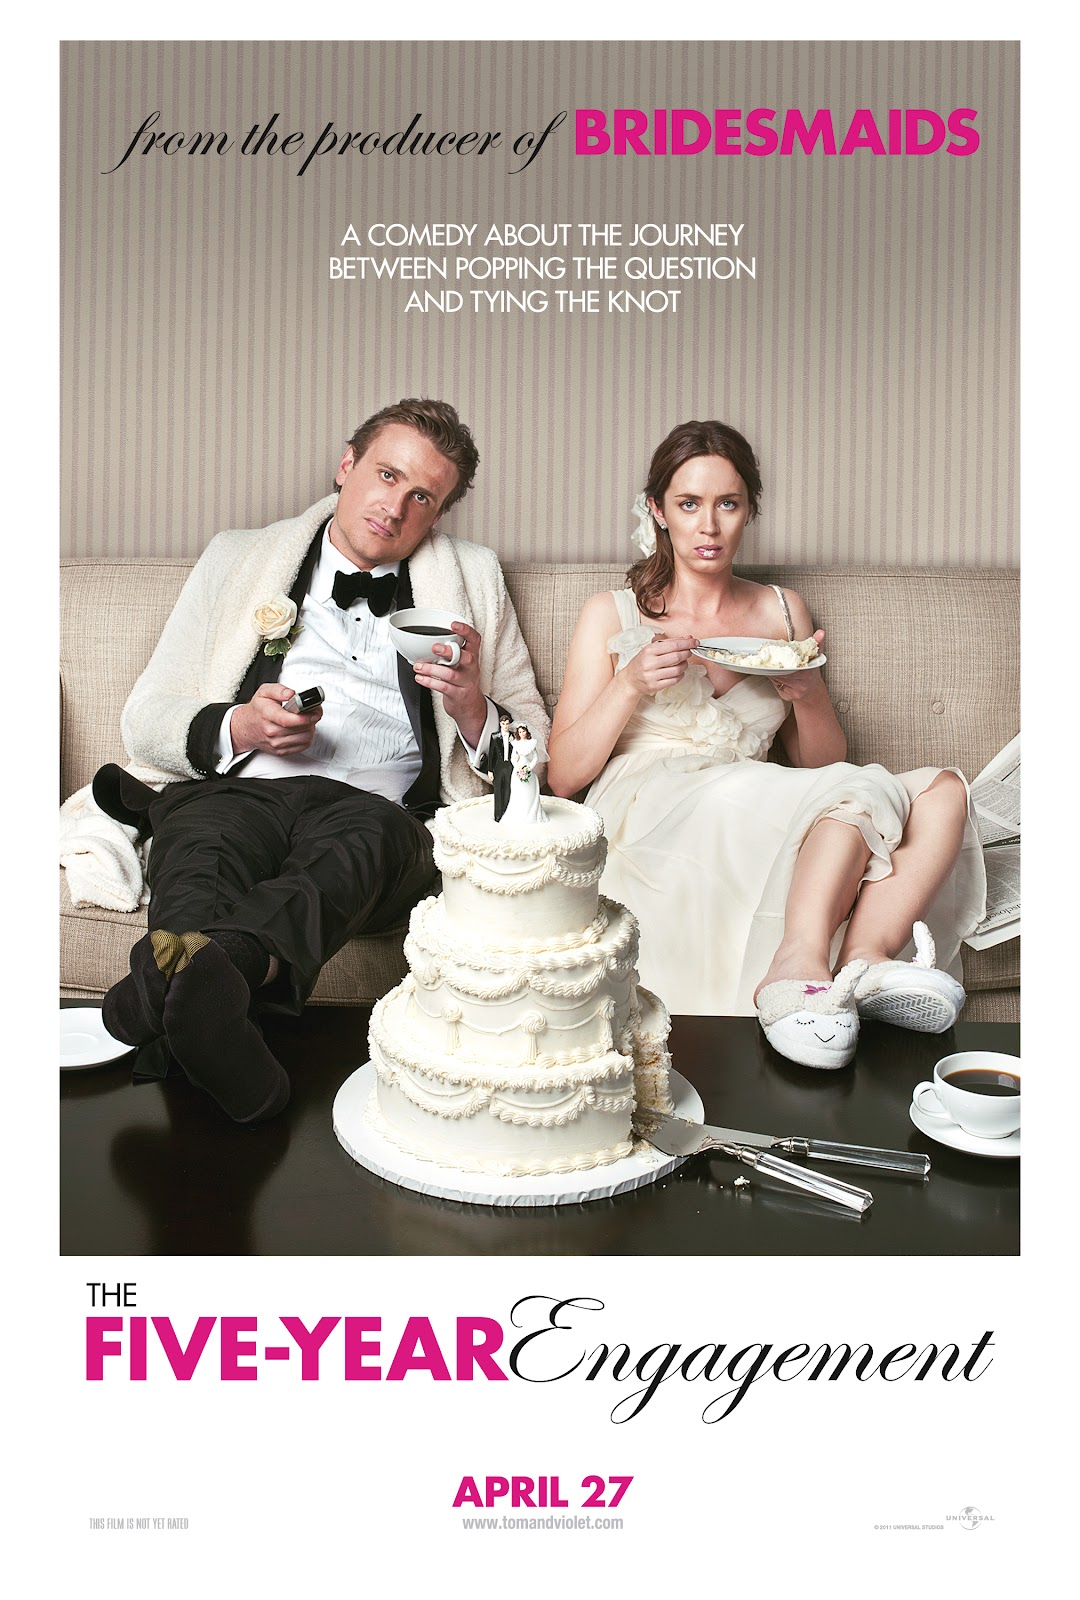 http://2.bp.blogspot.com/-1yDAWQAXddA/T41R9TKxz9I/AAAAAAAAHxE/5_pEZZLgt_w/s1600/the-five-year-engagement-movie-poster.jpg